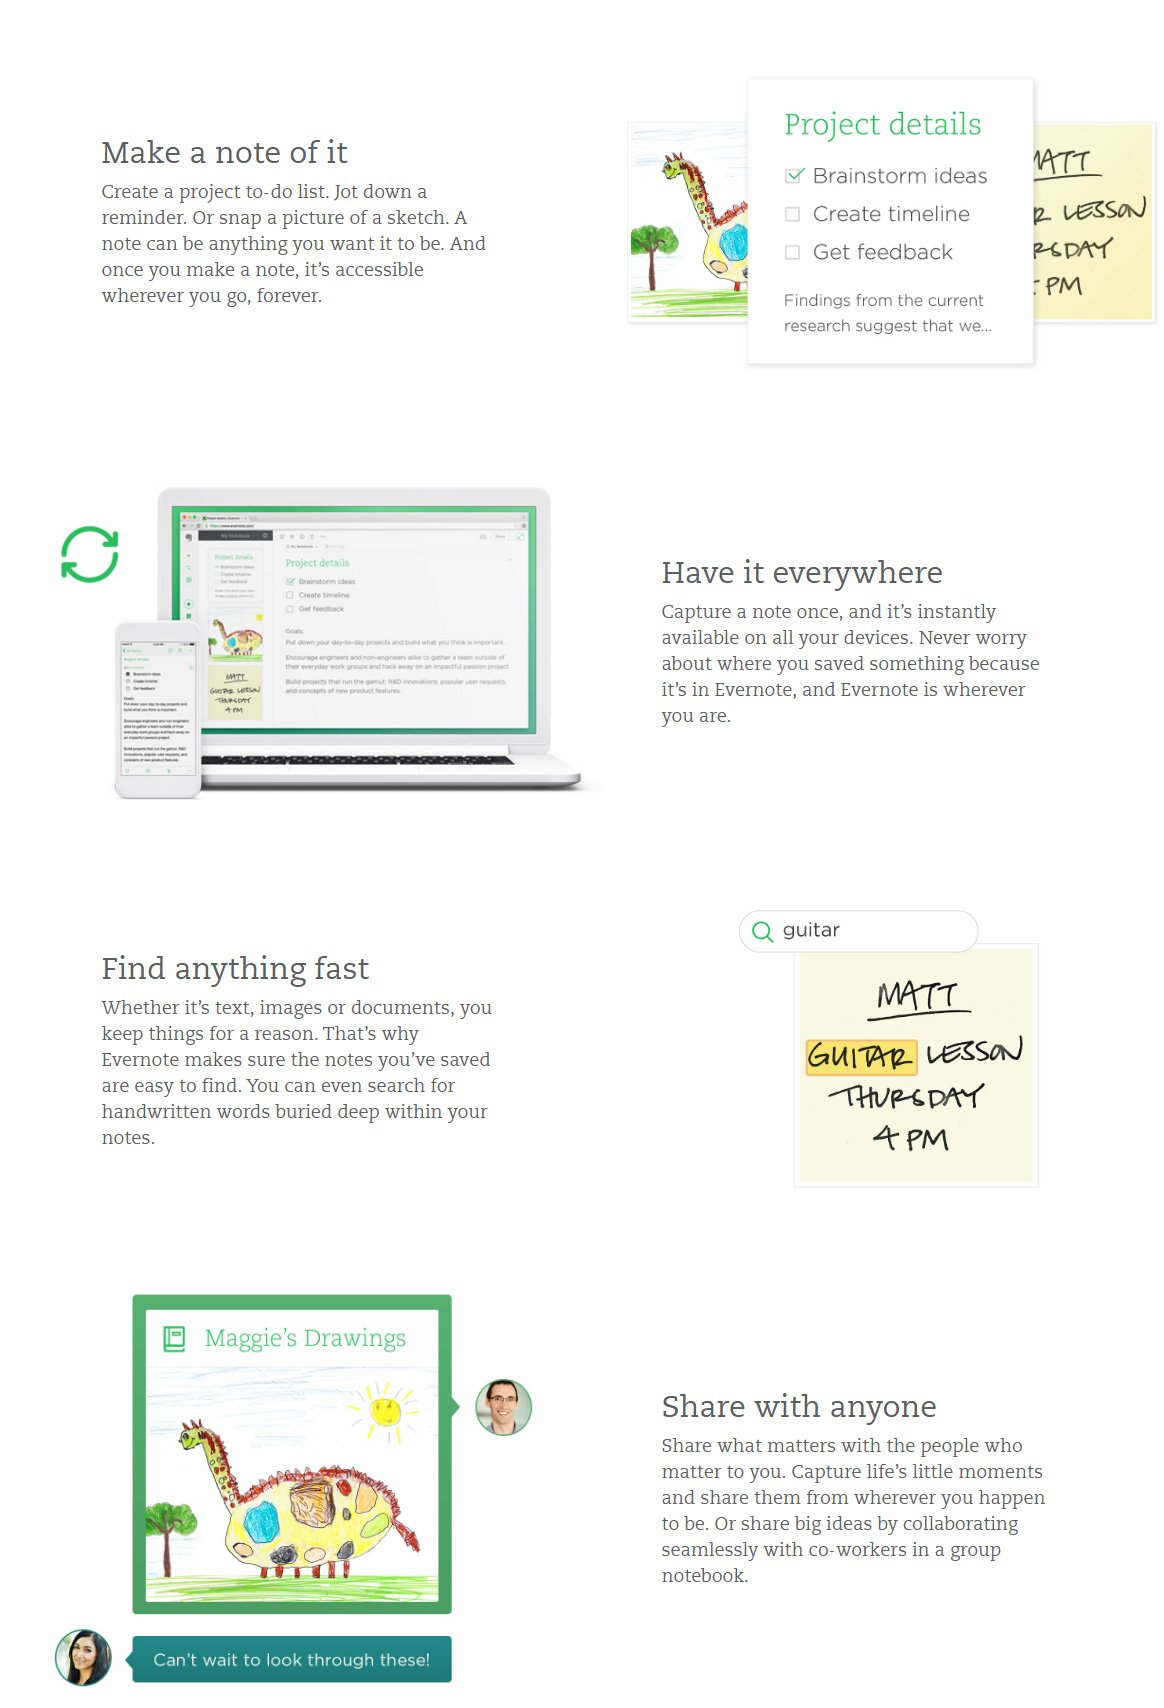 evernote-value-proposition